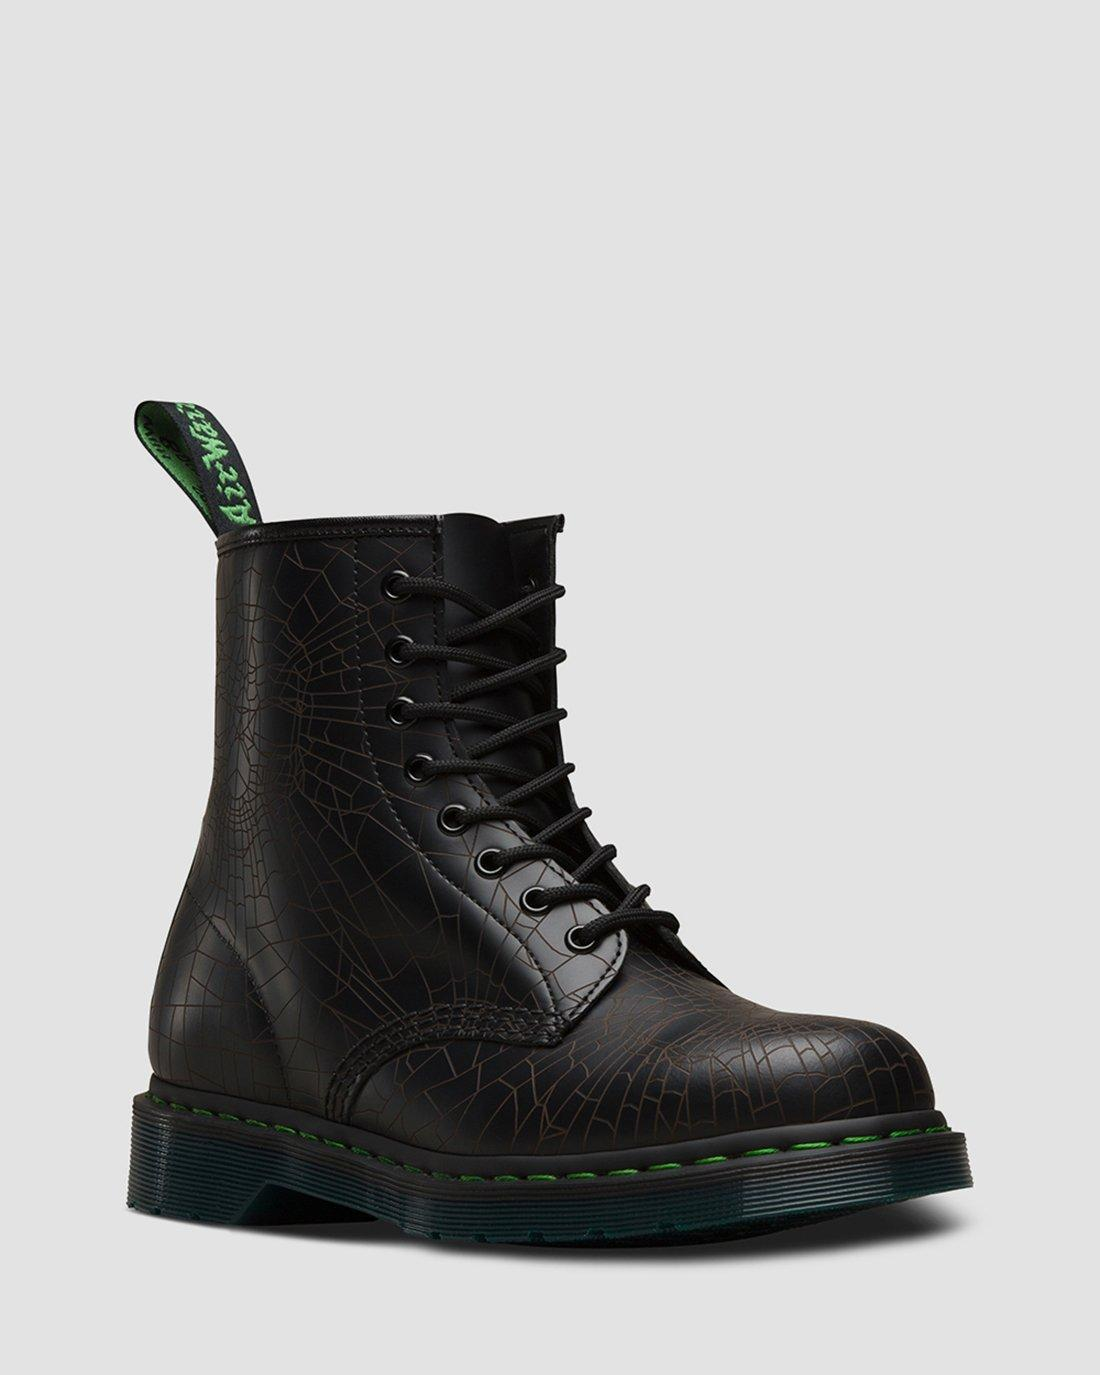 1460 SKULL WEB | SALE | Leather Boots, Shoes & Accessories